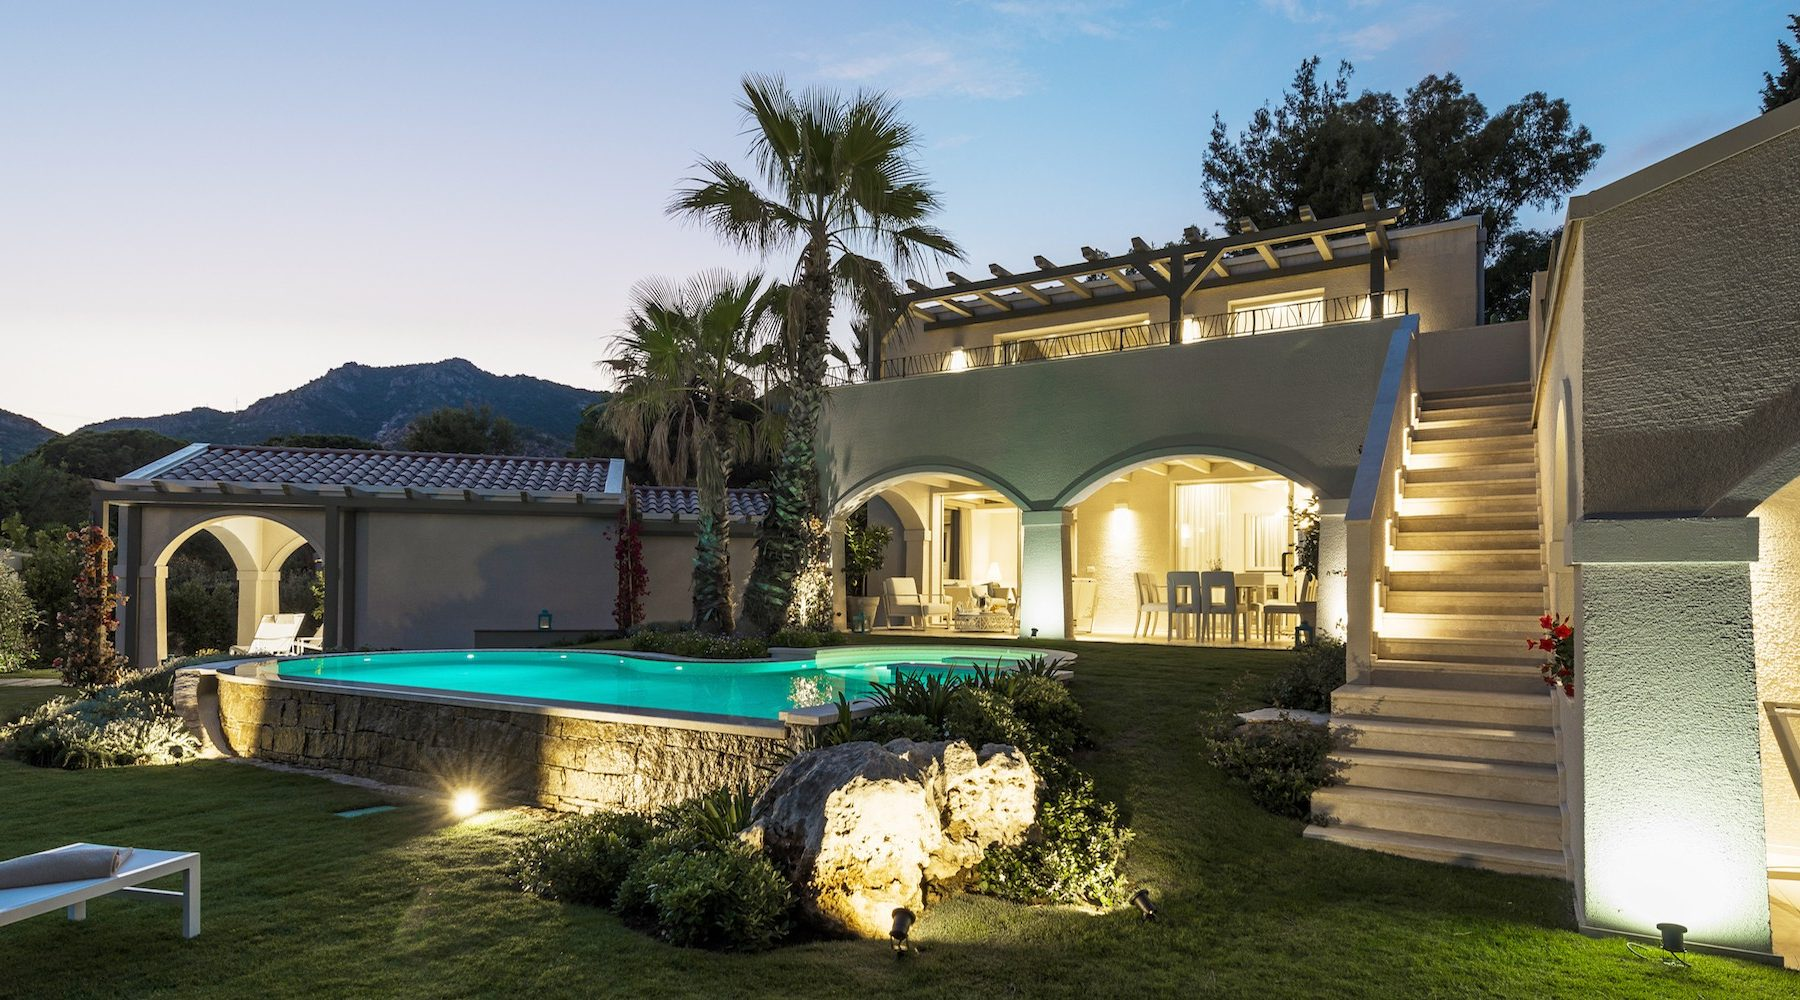 View of Villa Sofia by night at Forte Village in Sardinia